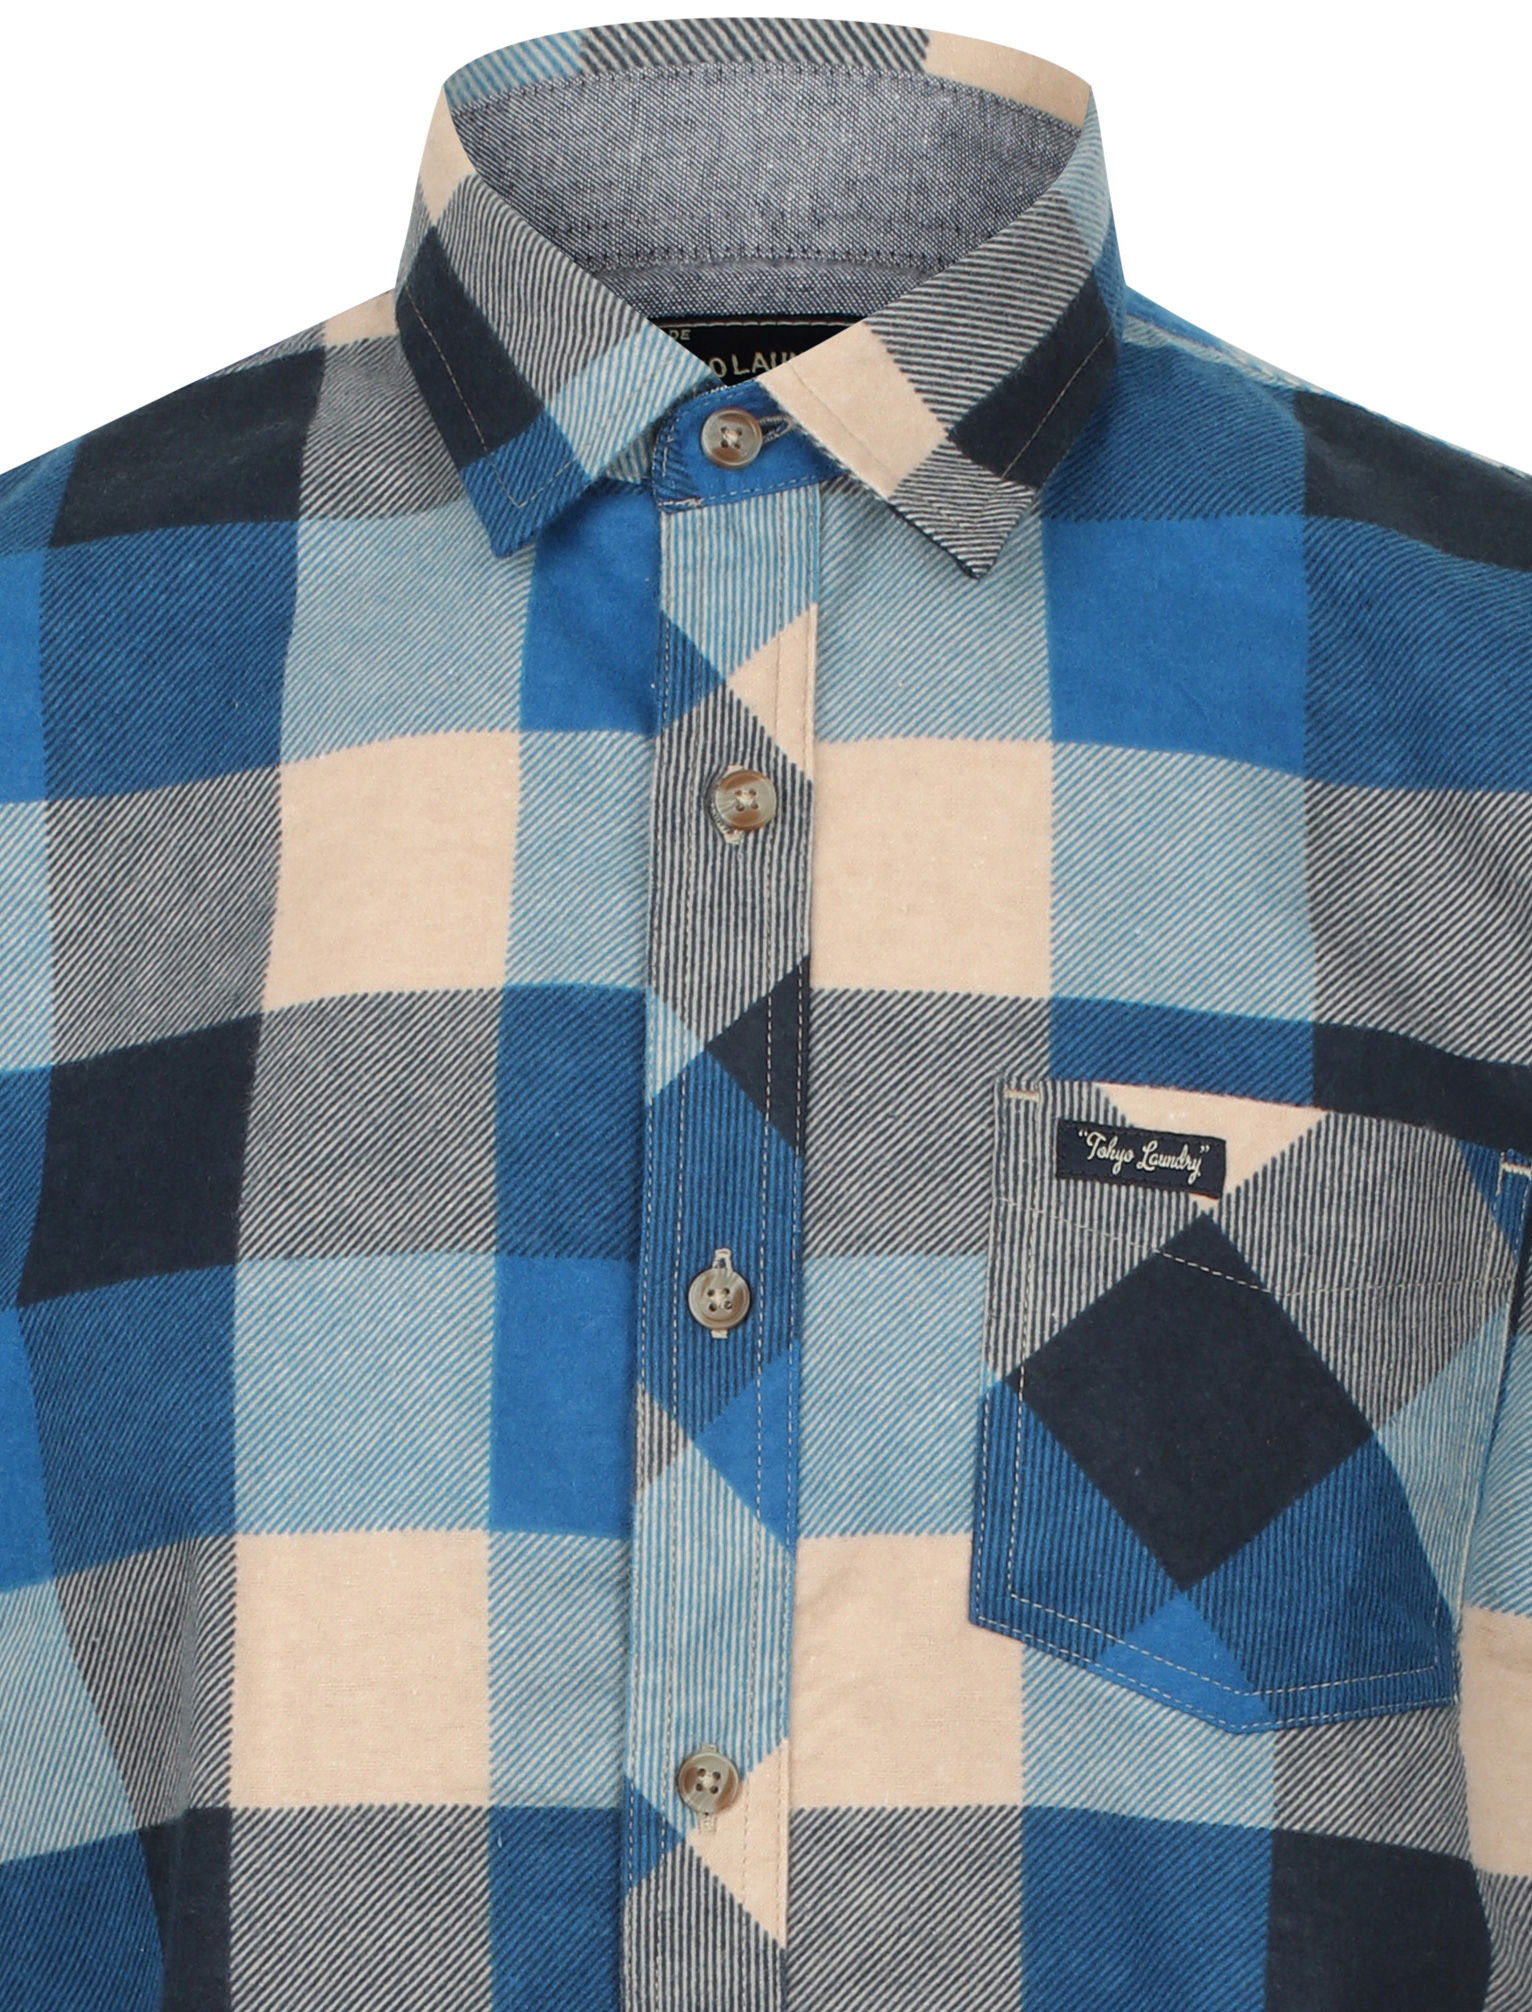 New-Mens-Tokyo-Laundry-Cotton-Long-Sleeve-Checked-Flannel-Shirt-Size-S-XXL thumbnail 26